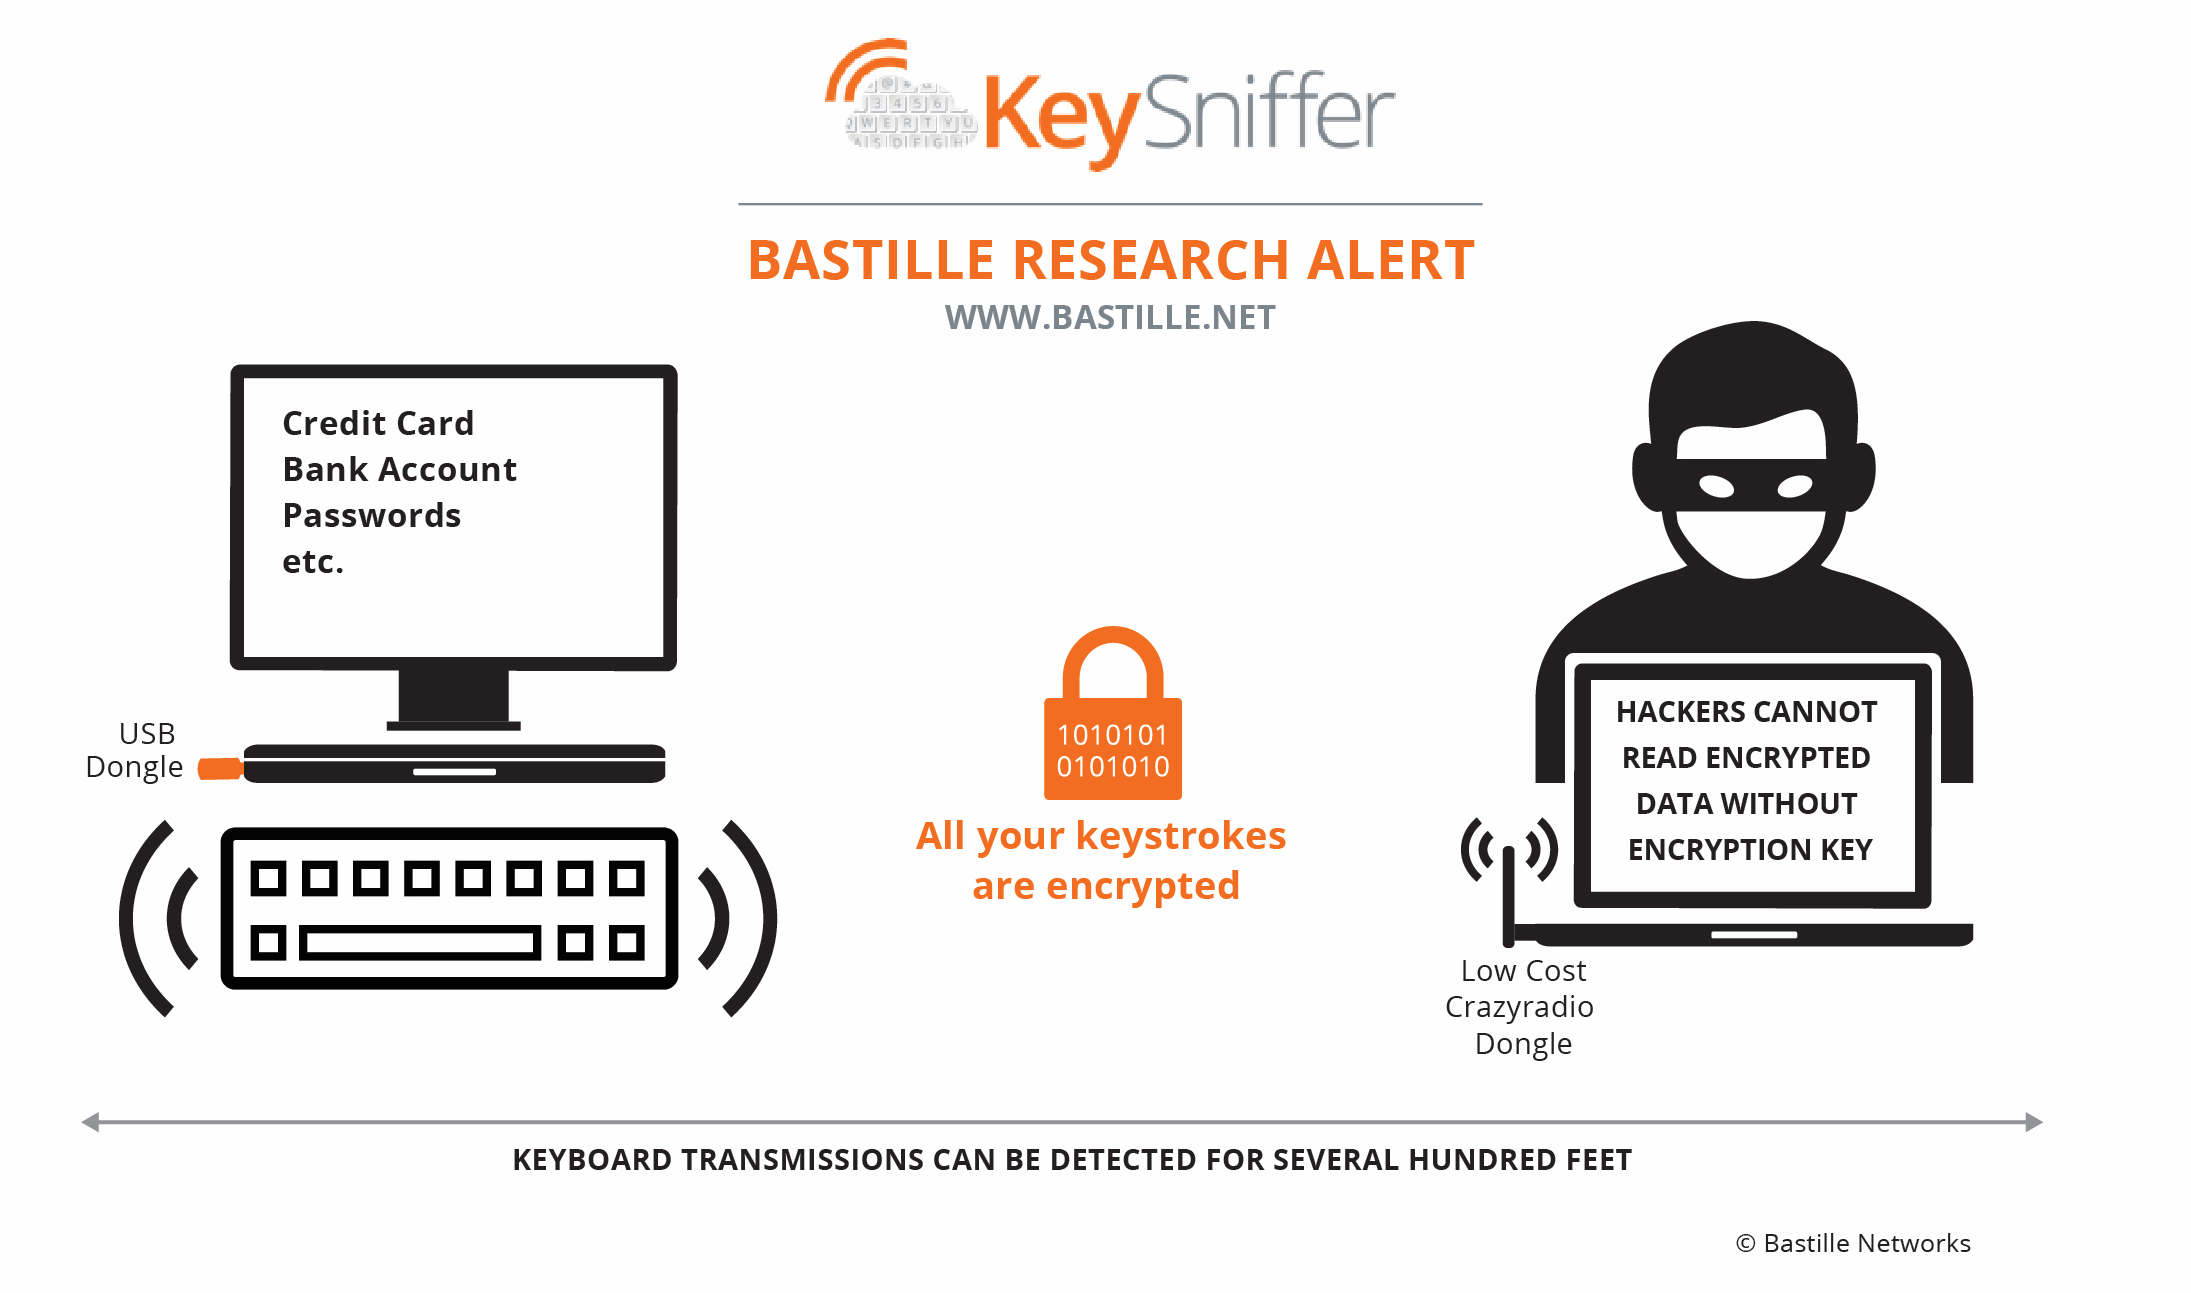 Bastille Networks - How it works with keyboards safe from KeySniffer vulnerability